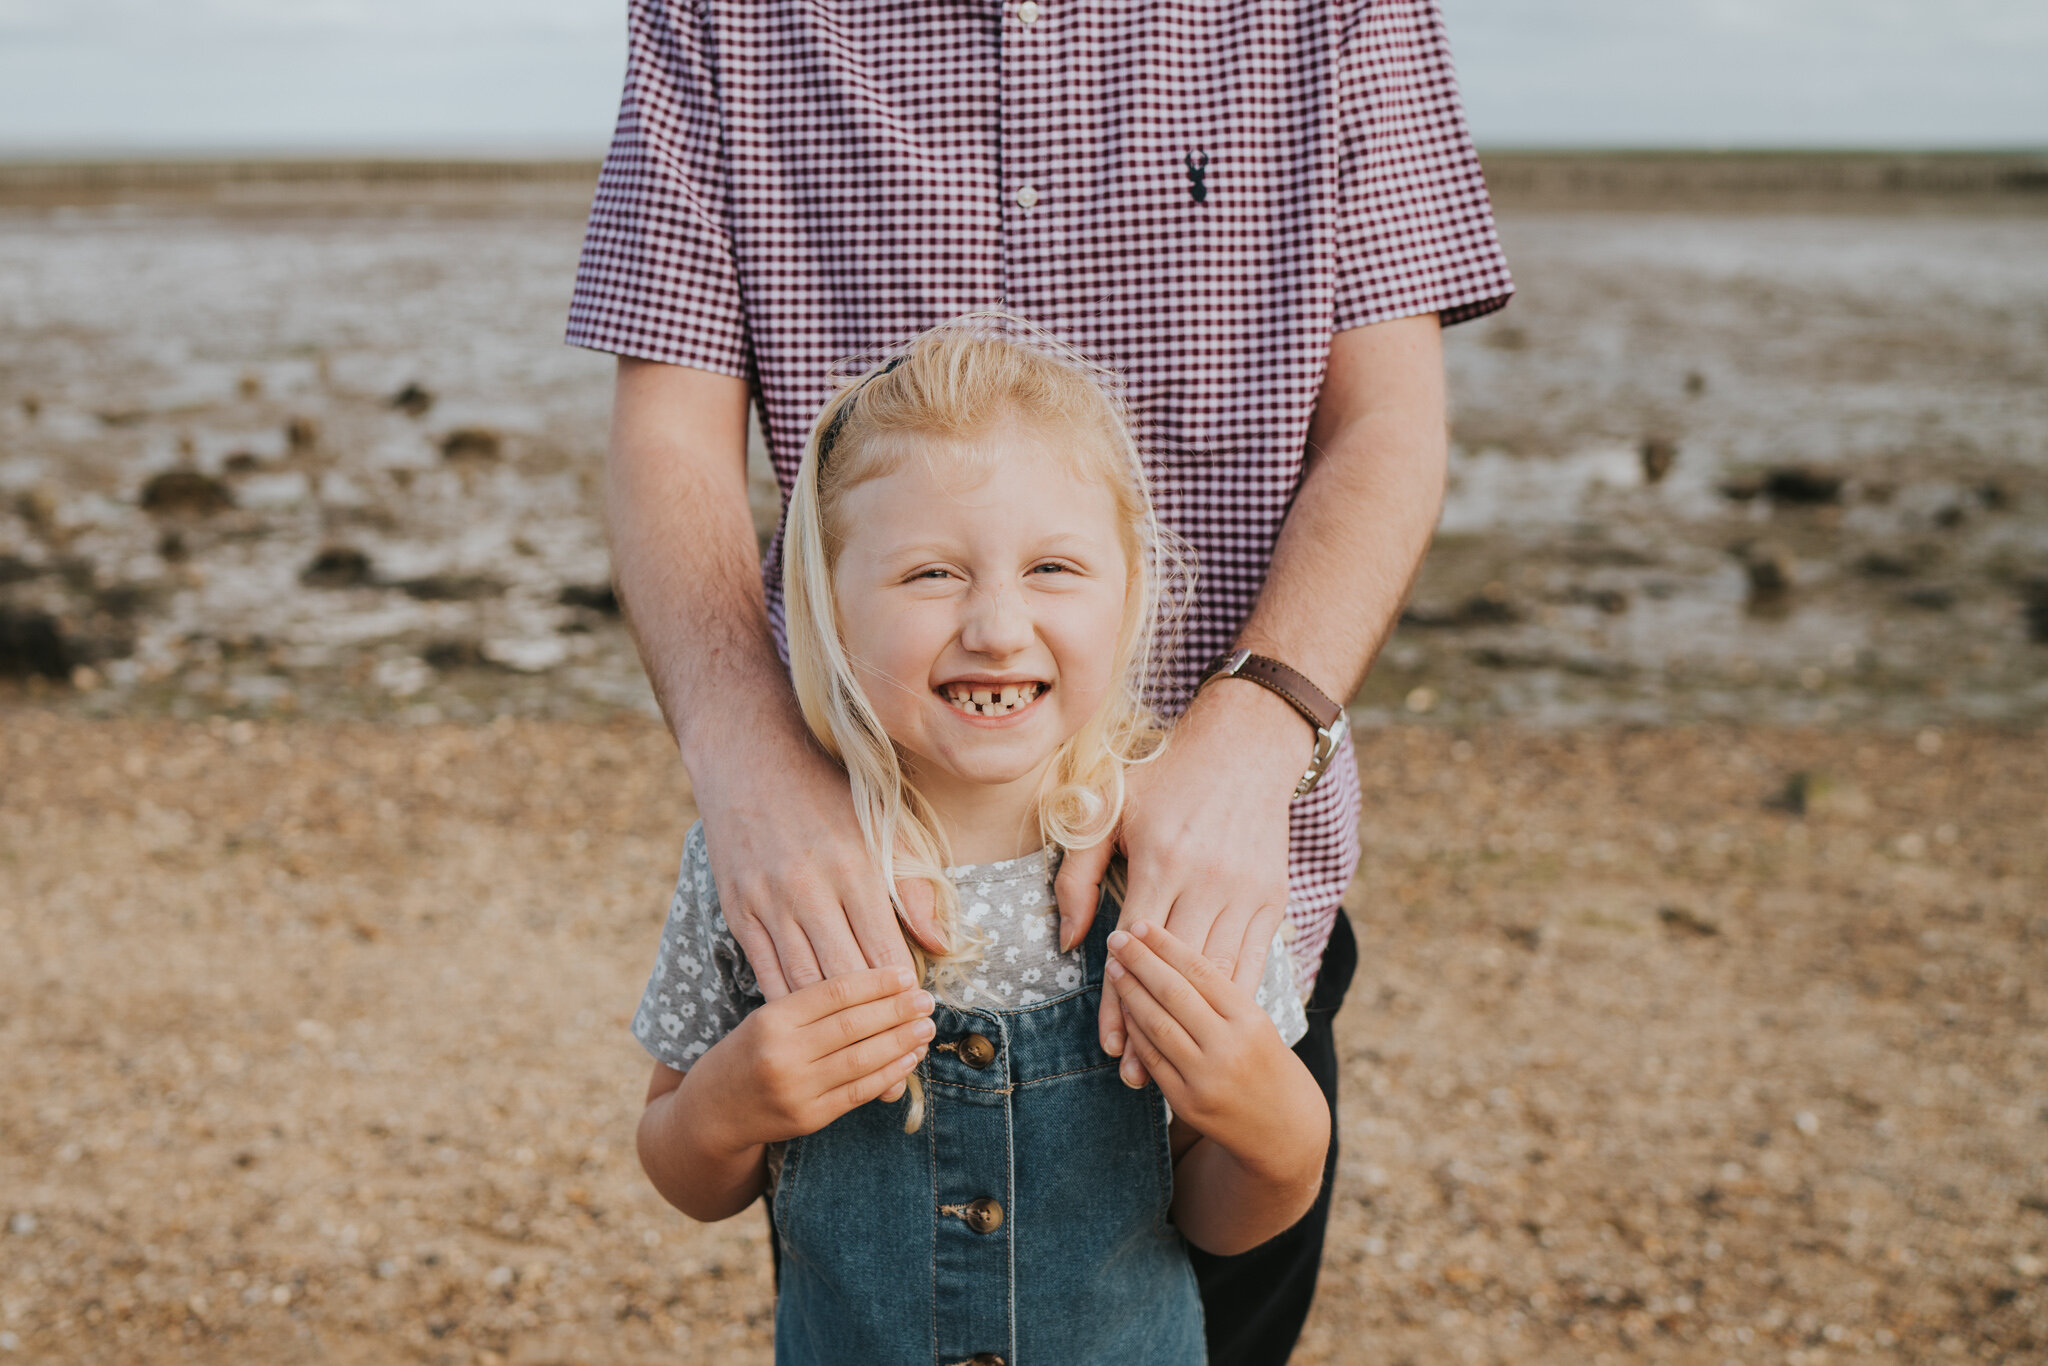 celebratory-beach-family-session-thomson-family-cudmore-grove-east-mersea-grace-elizabeth-colchester-essex-devon-suffolk-and-norfolk-alternative-wedding-and-family-photographer (35 of 53).jpg